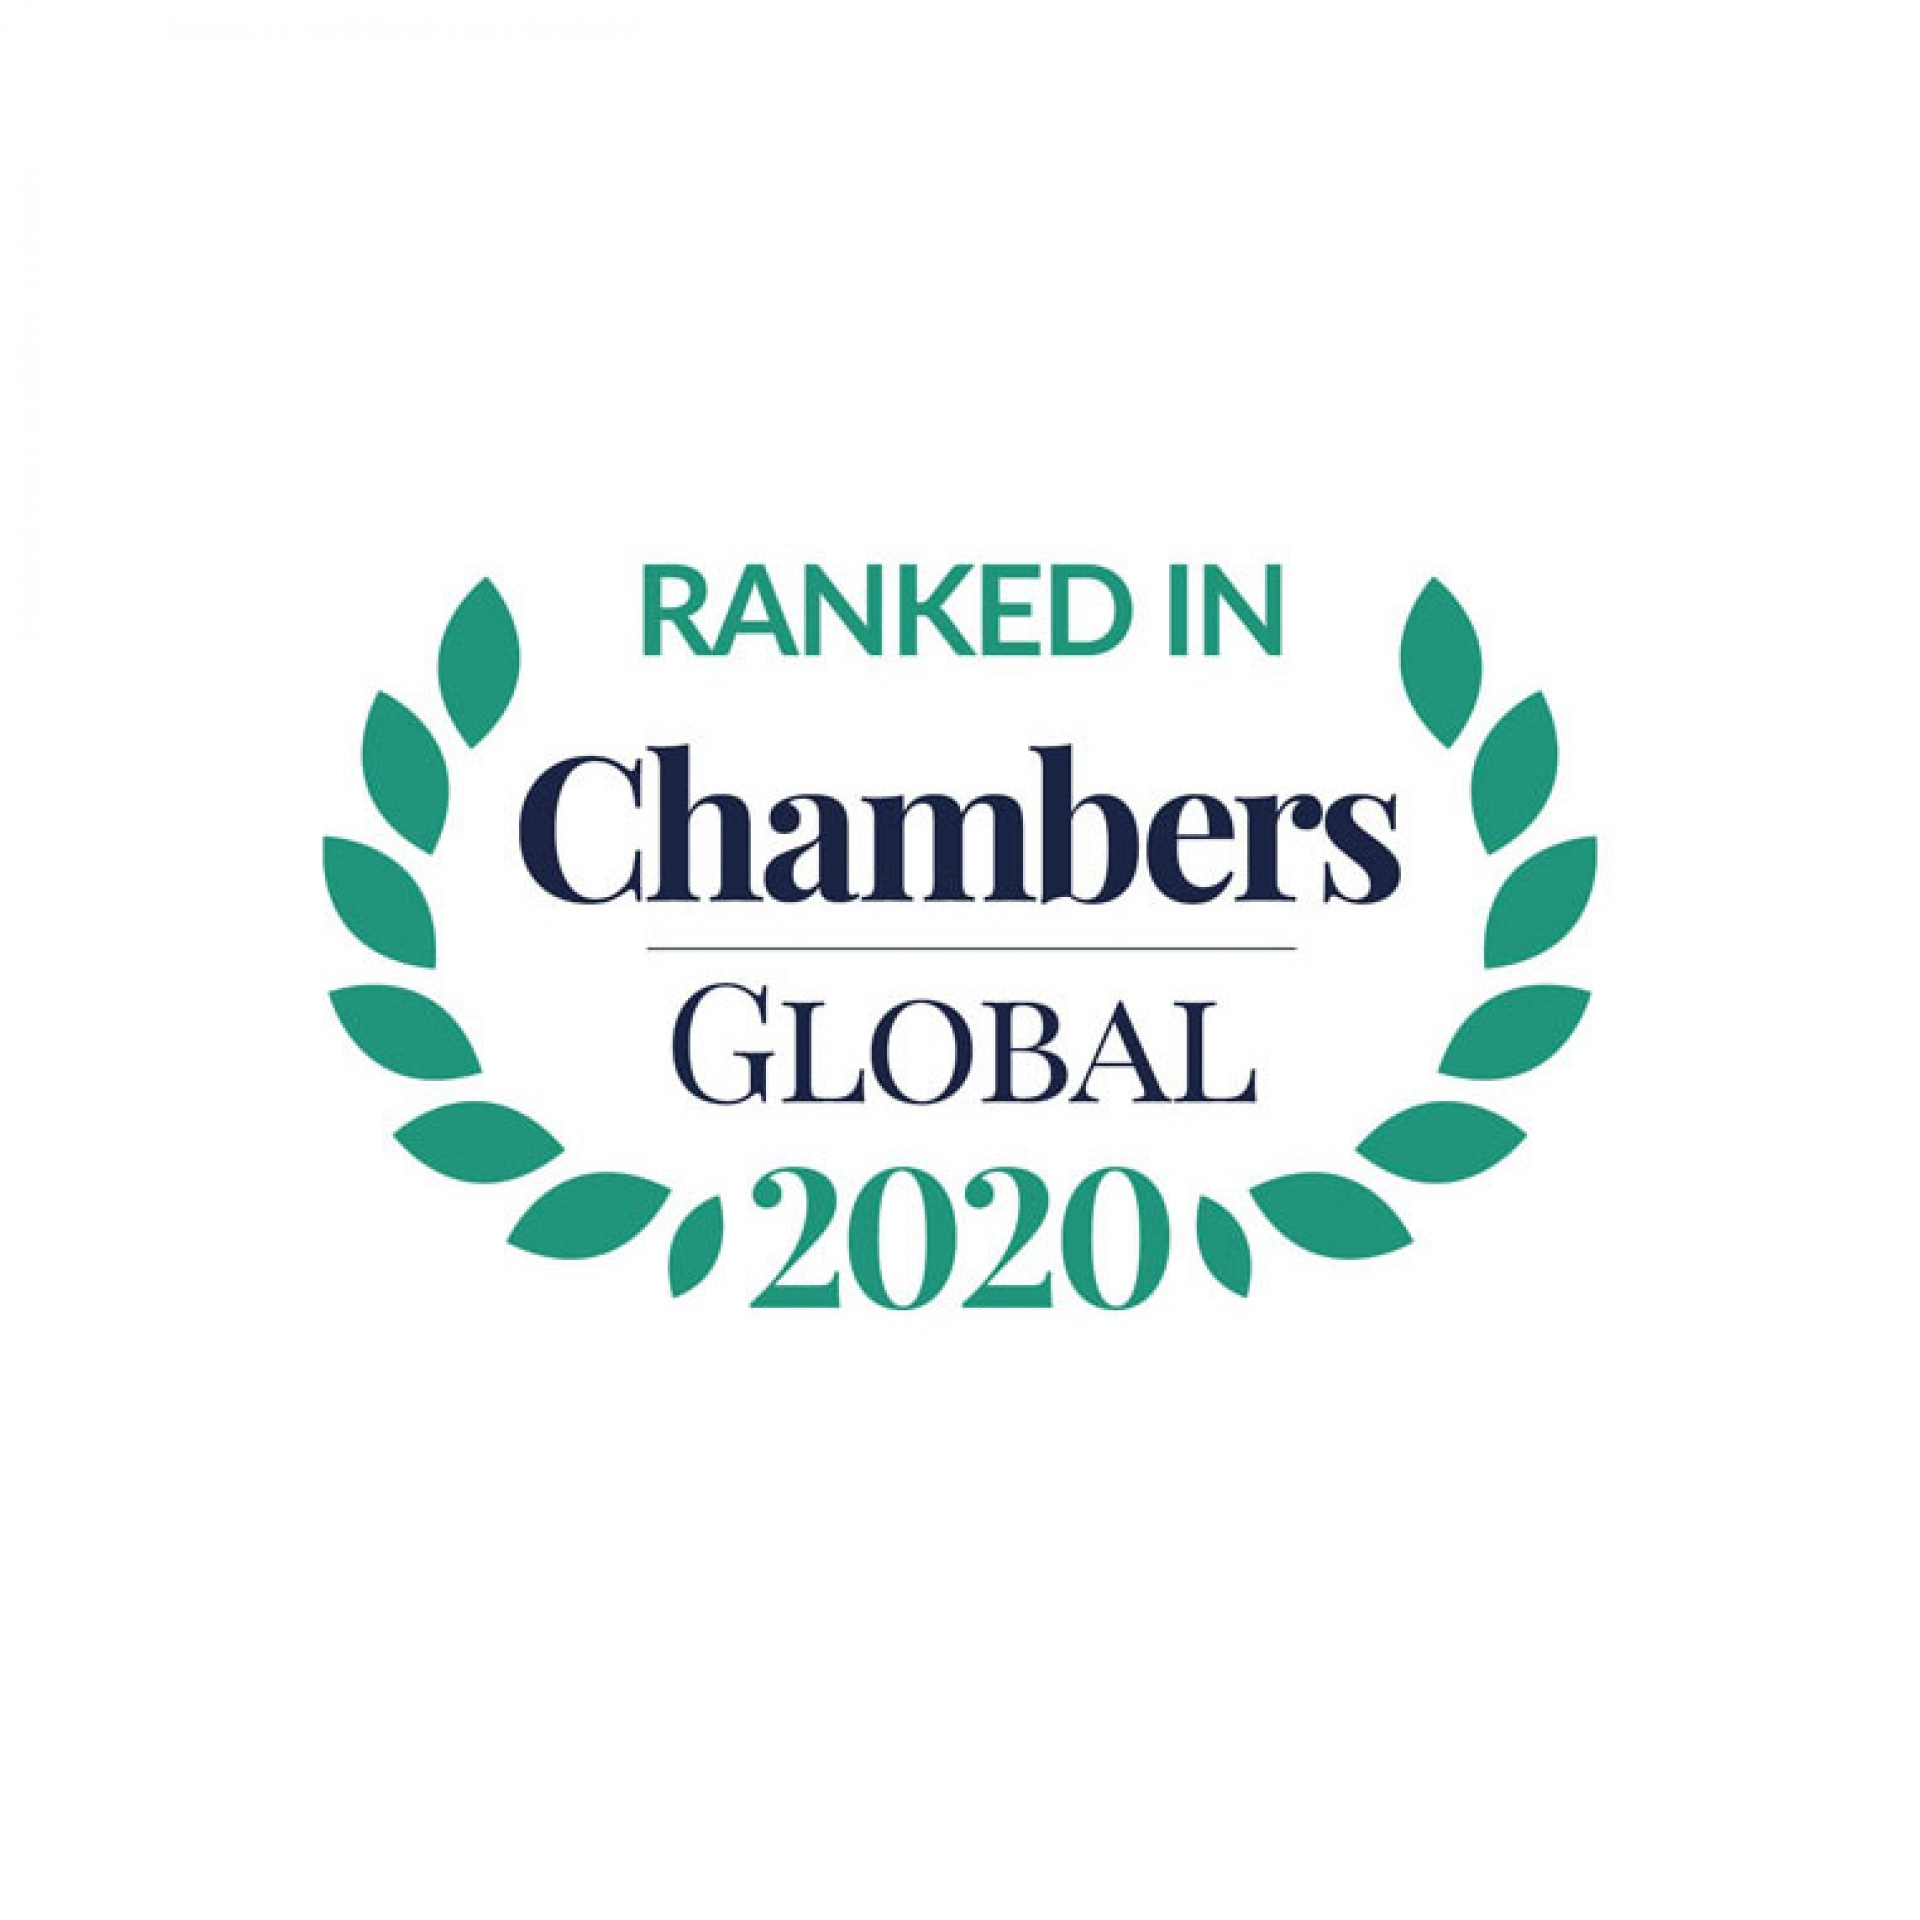 RANKED IN CHAMBERS GLOBAL 2020